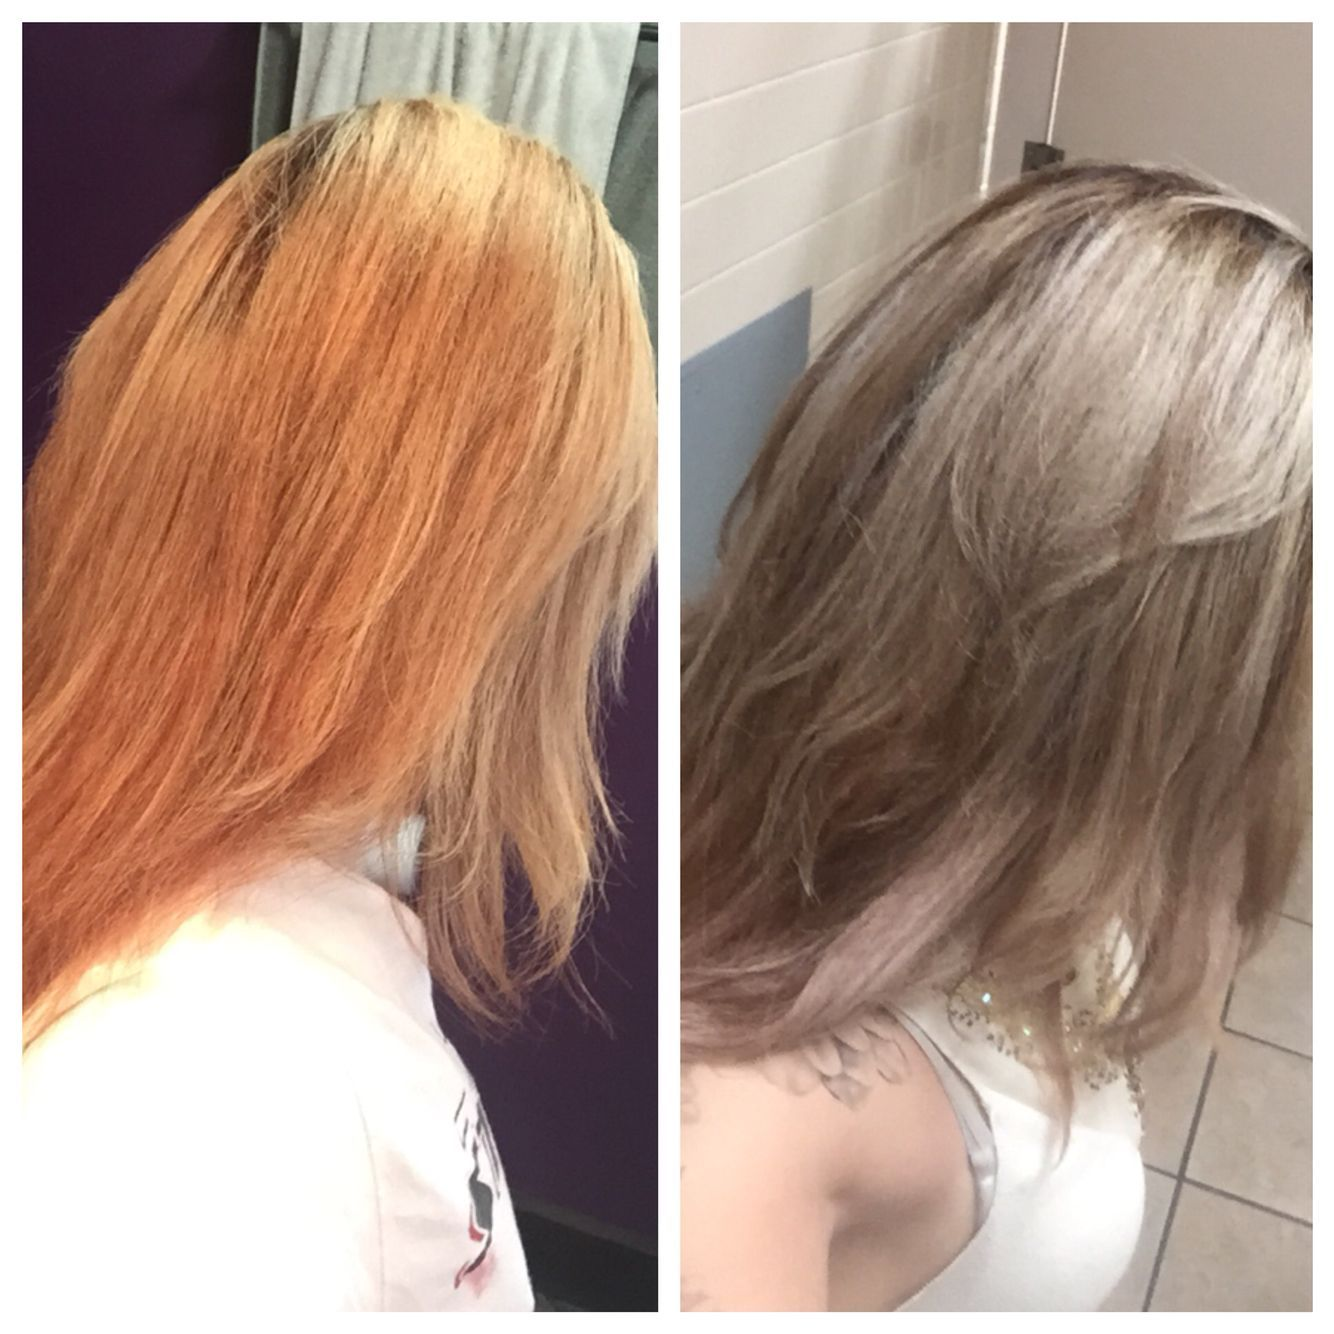 T28 Toner Before And After Wella Color Charm Toners Base Chart Wella Toners For Orange Wella Toners Chart We In 2020 Wella Hair Color Wella Toner Toner For Blonde Hair